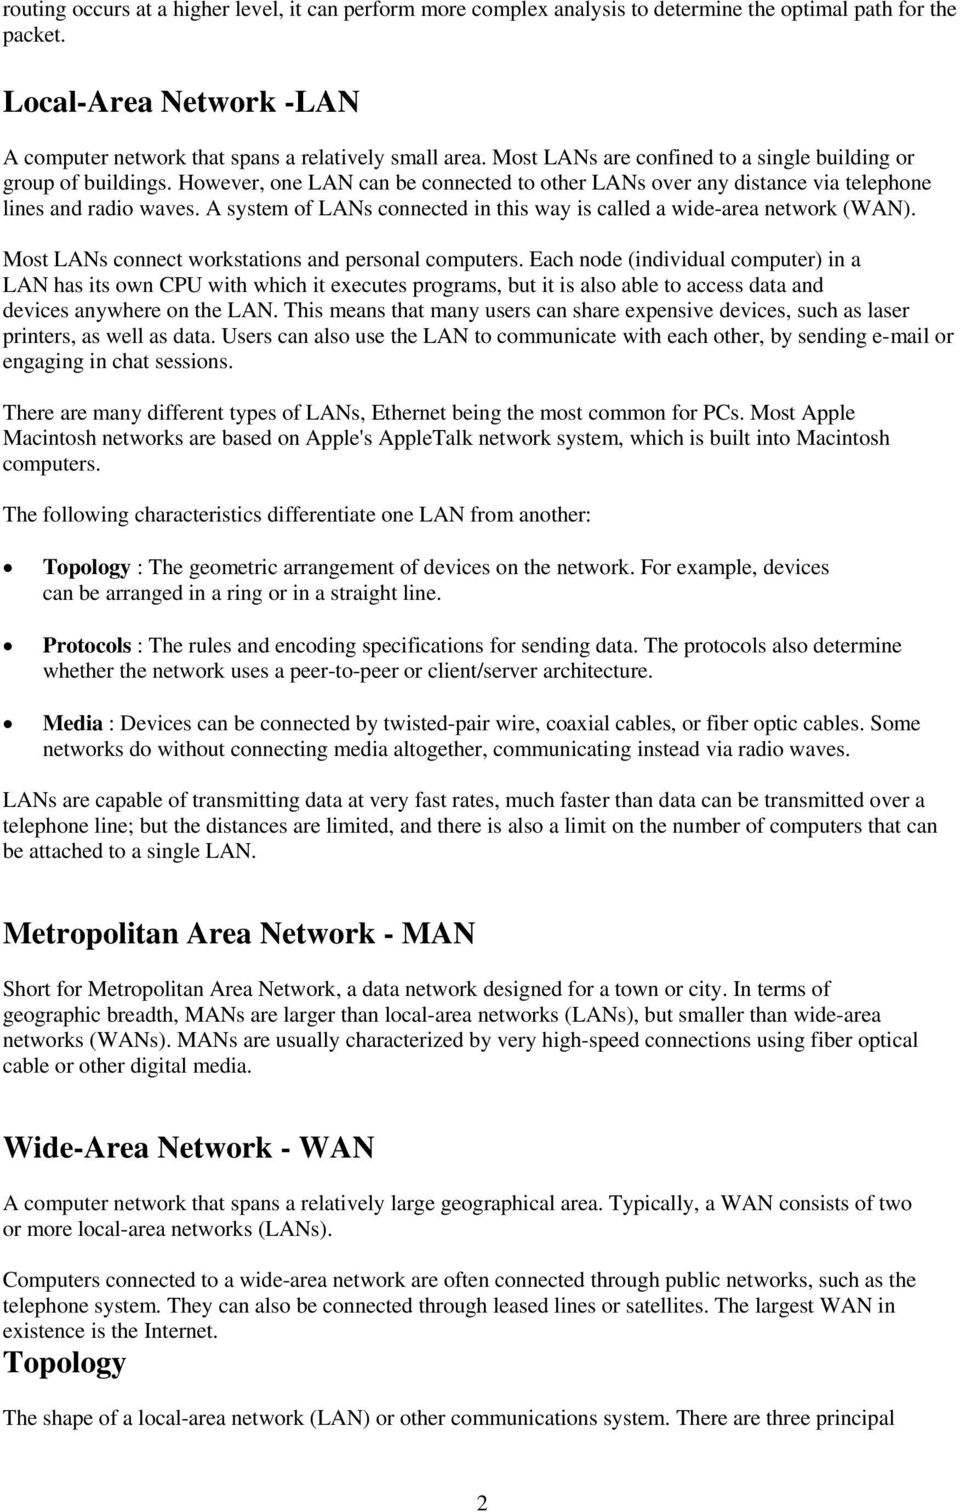 A system of LANs connected in this way is called a wide-area network (WAN). Most LANs connect workstations and personal computers.